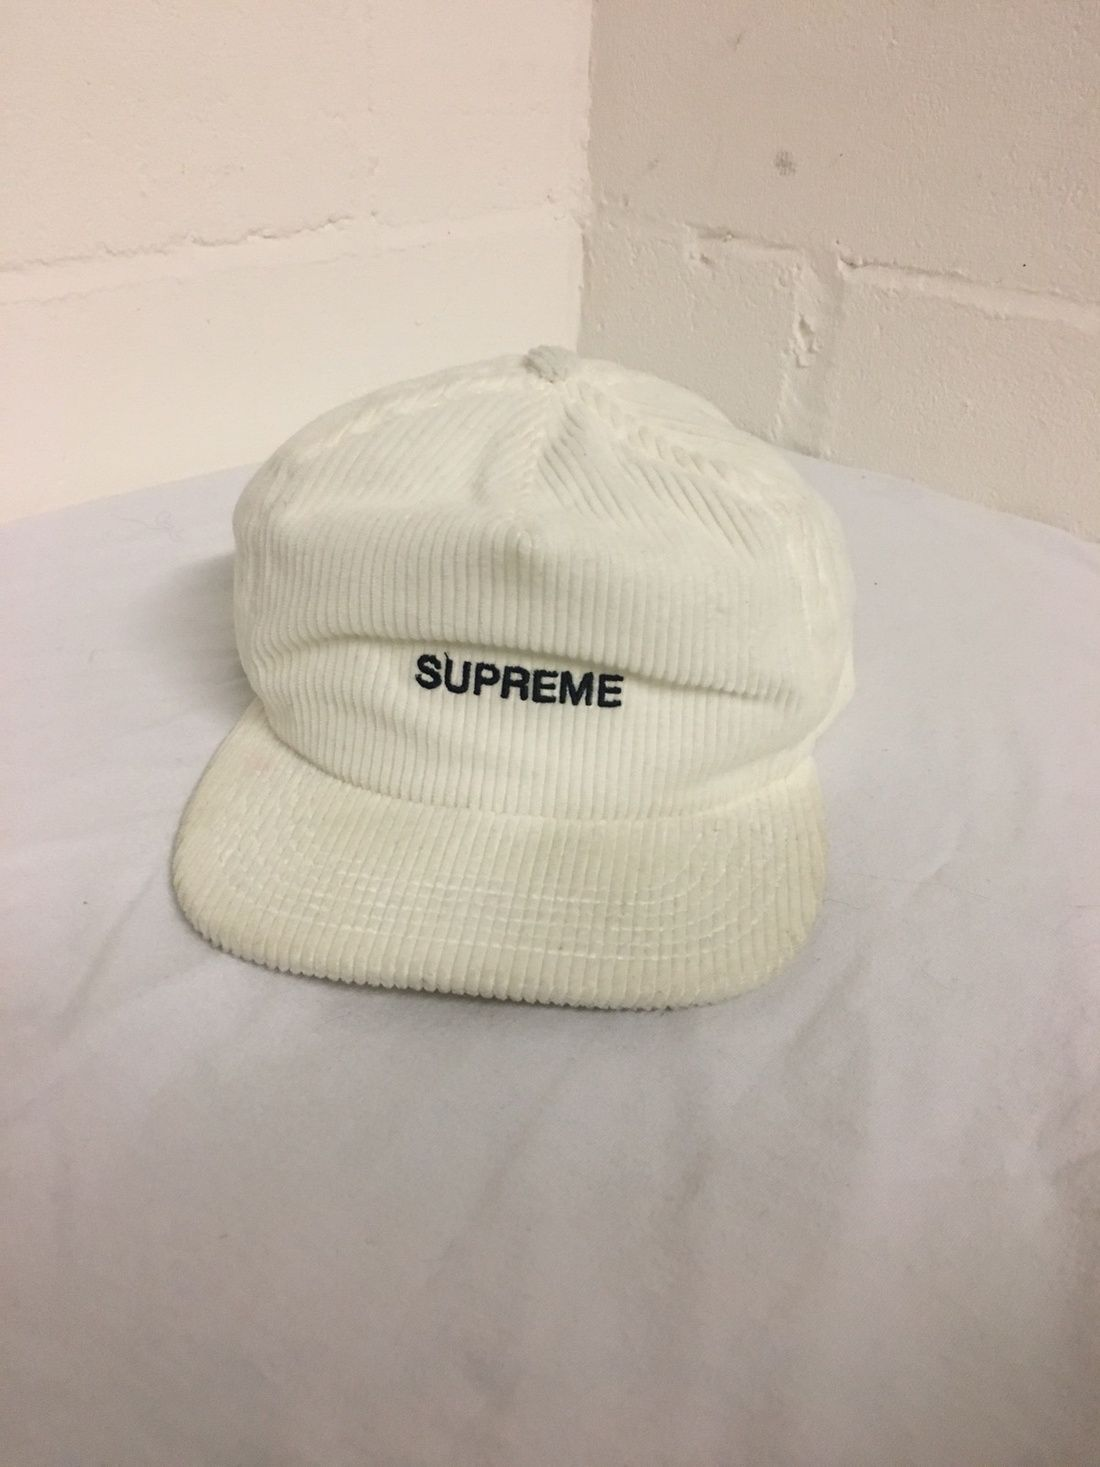 2c1d7f9830f Supreme Corduroy Trucker Hat Size One Size  31 - Grailed